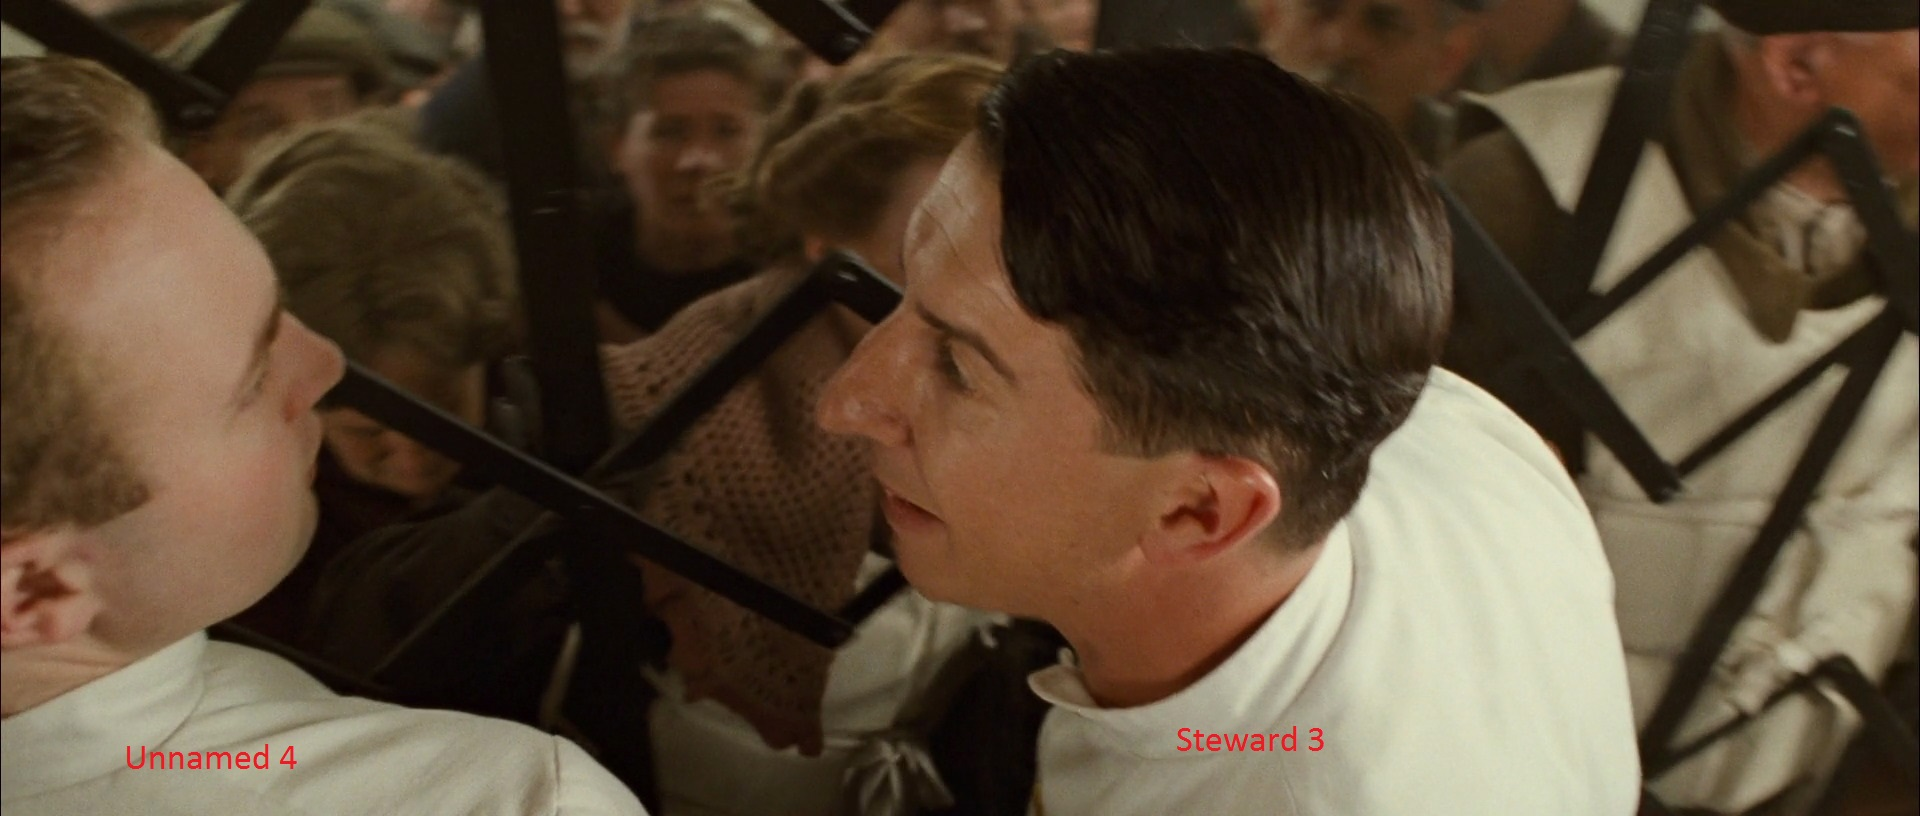 Assistants of Steward 3 (from 1997 Film)